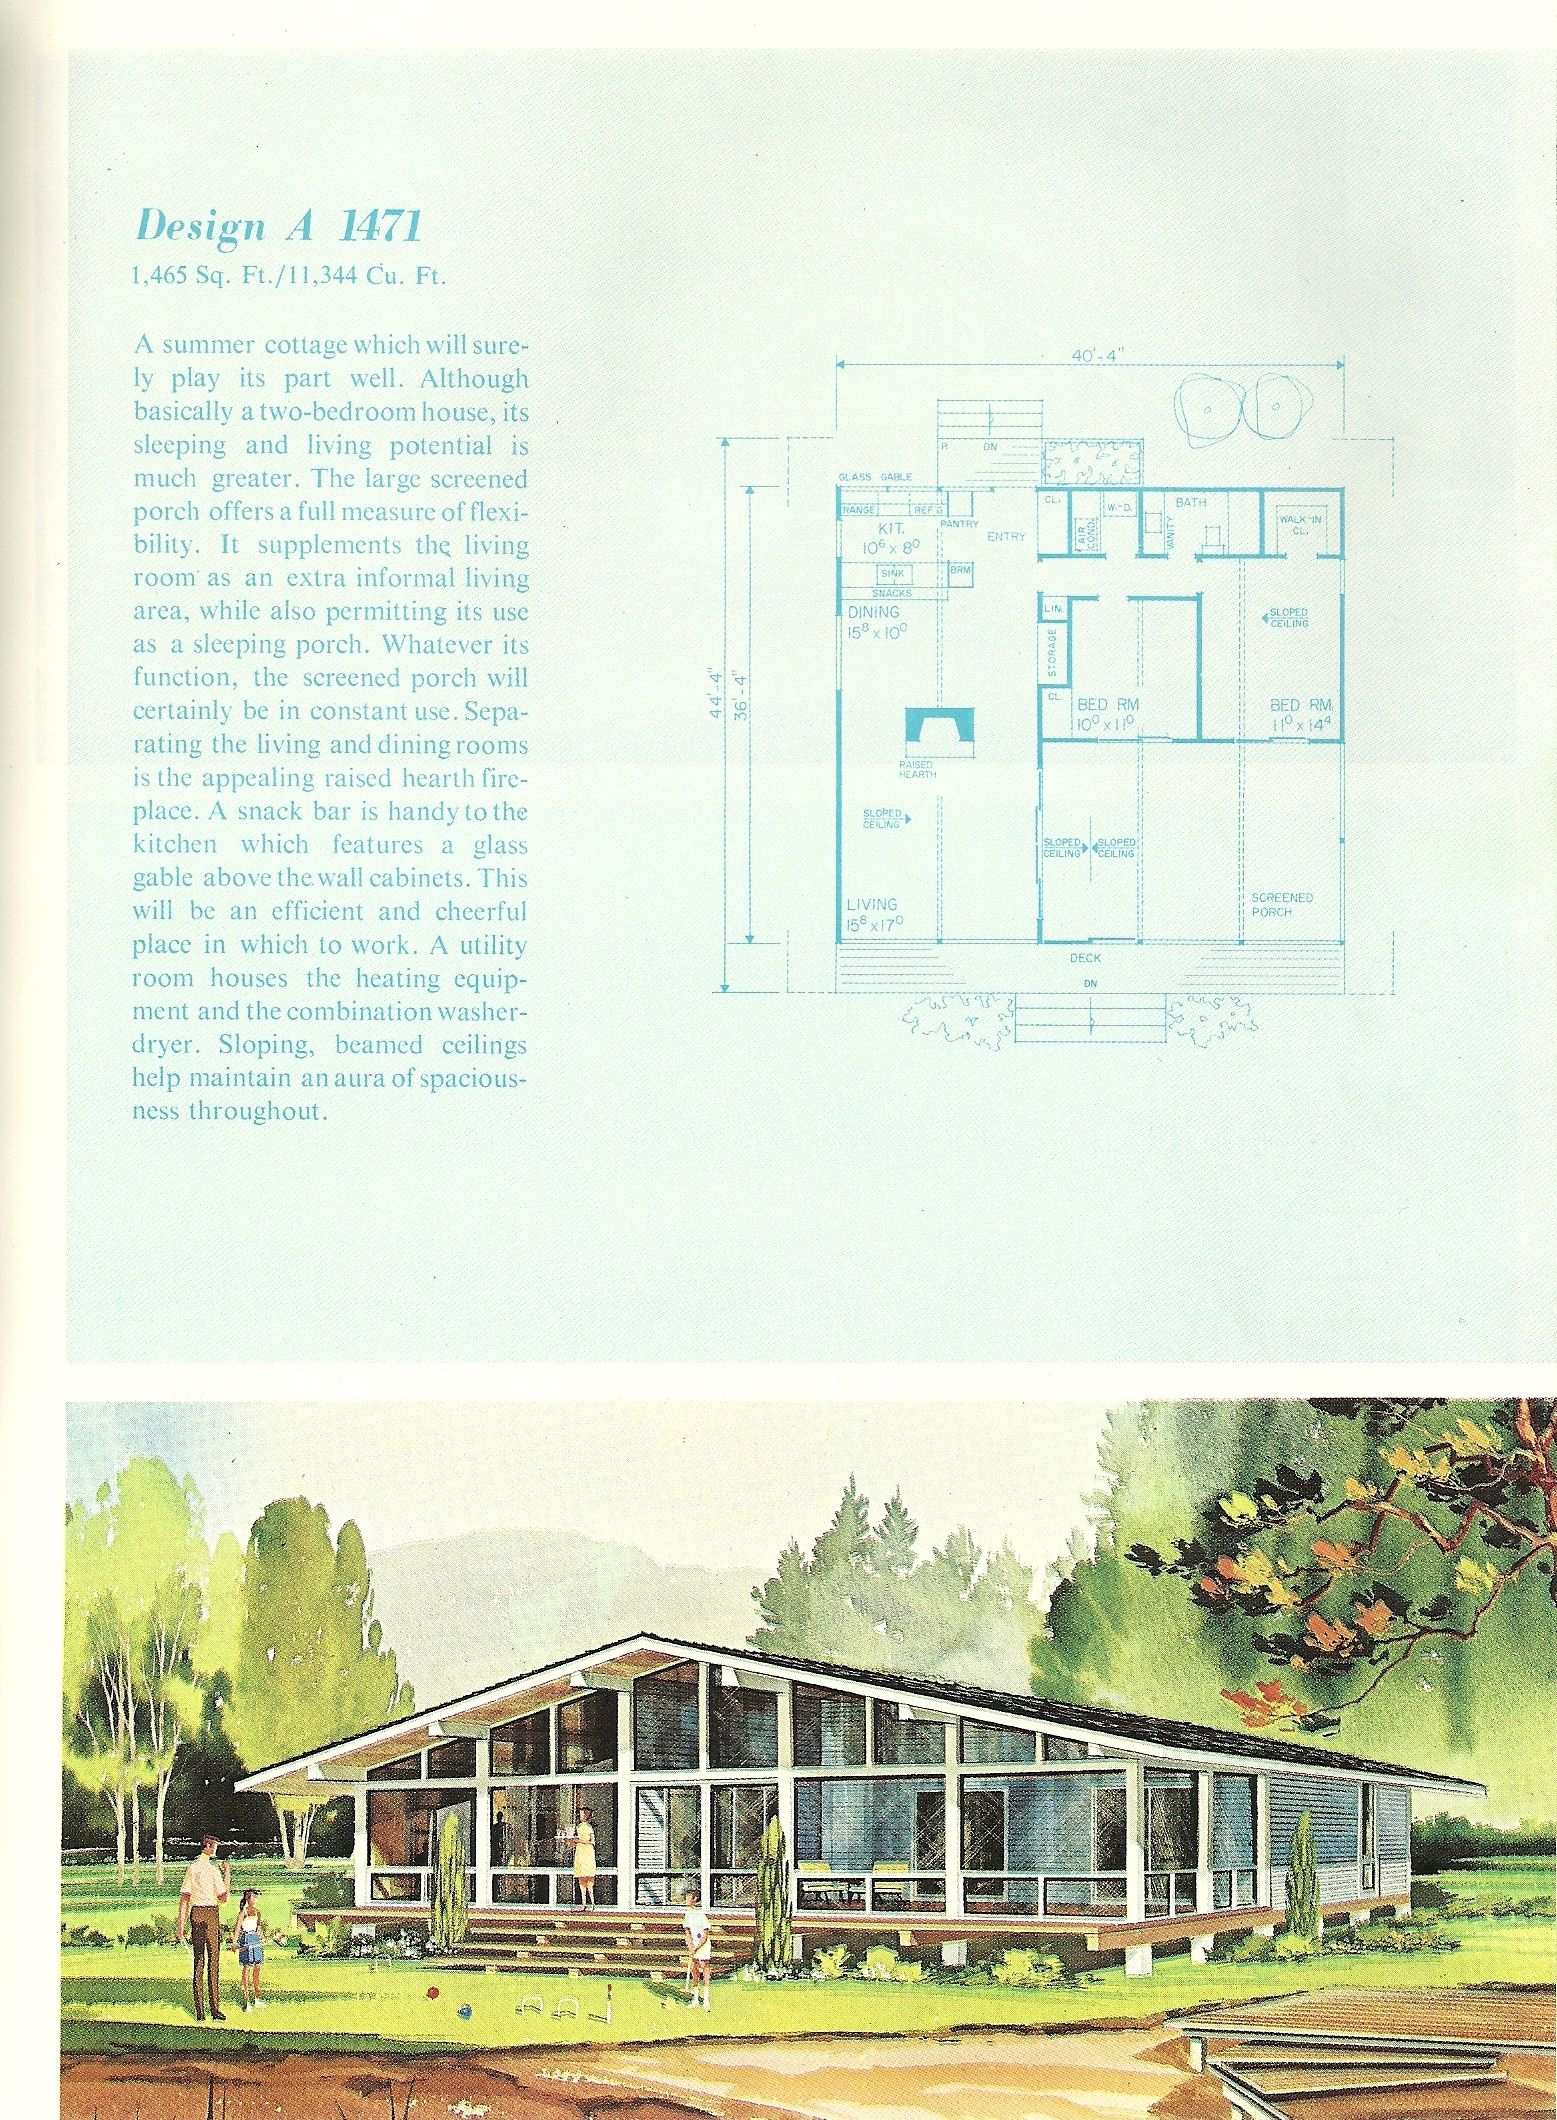 Vintage Vacation House Plans, 1960s vacation homes | Vintage ... on raised cottage house plans, texas ranch style home plans, raised house plans southern, coastal raised house plans, raised house floor plans,